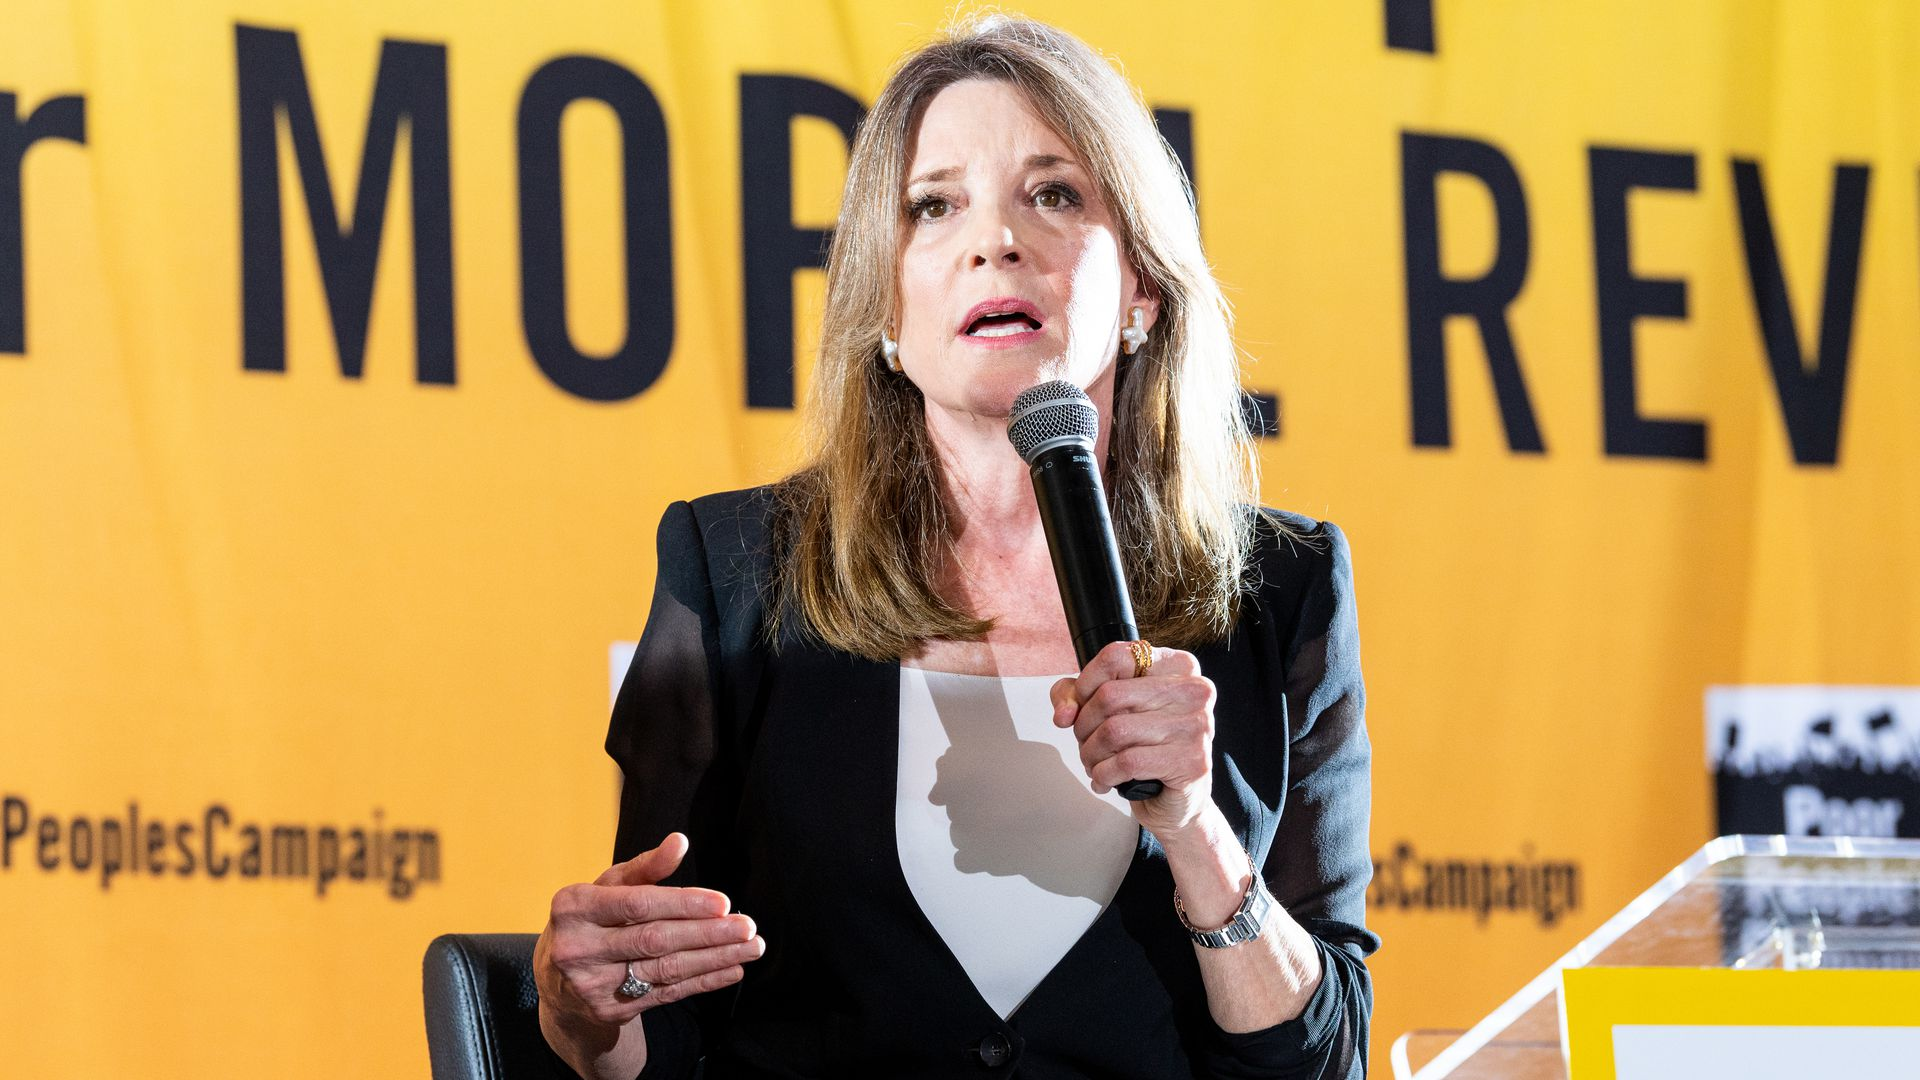 Trump Appears To Abandon Vaccine >> 2020 Candidate Marianne Williamson Apologizes For Vaccine Comments